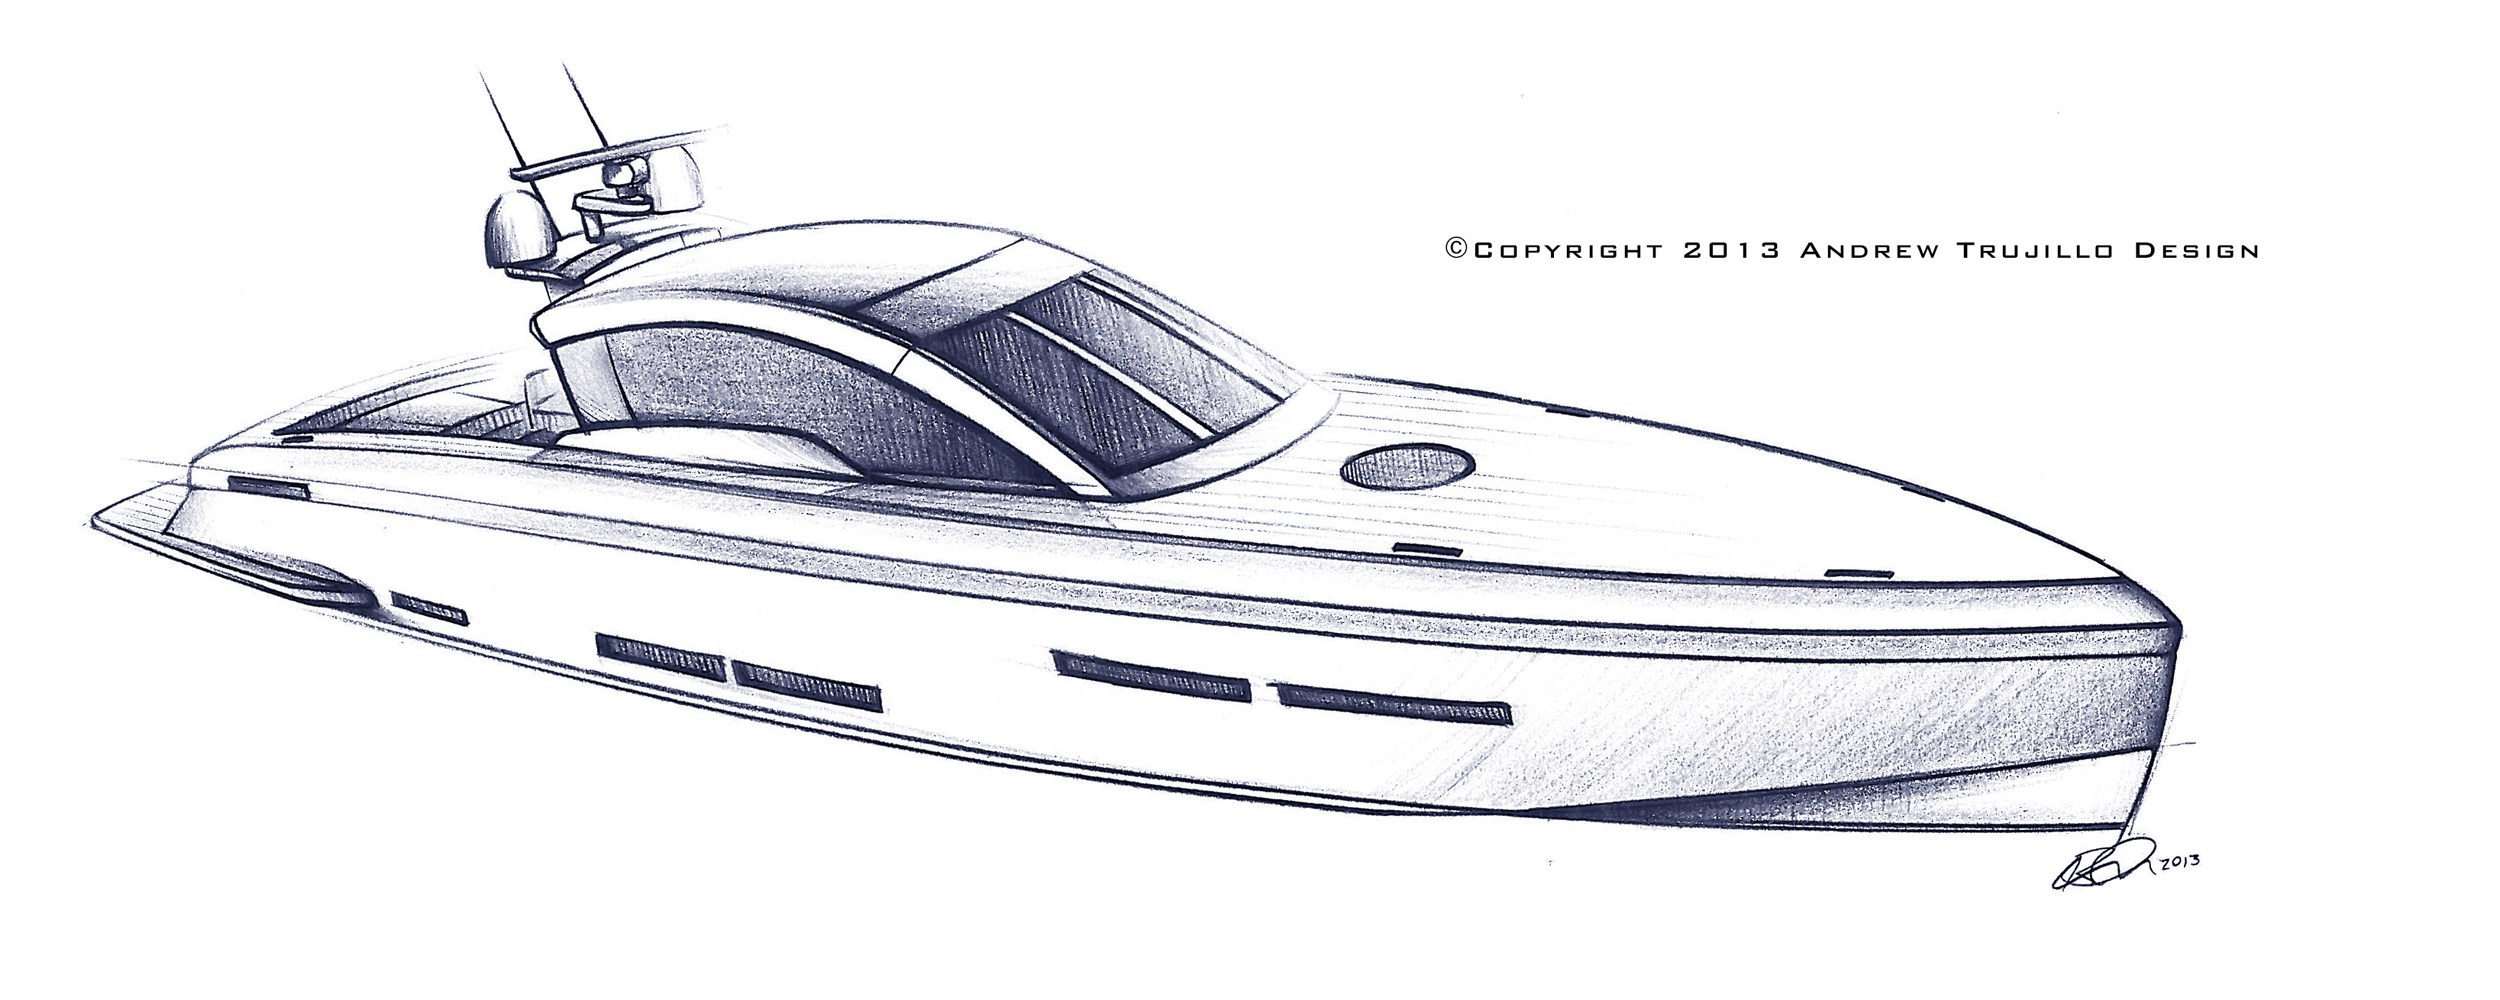 Drawn yacht motor boat Design Aircraft Yacht 25 Andrew